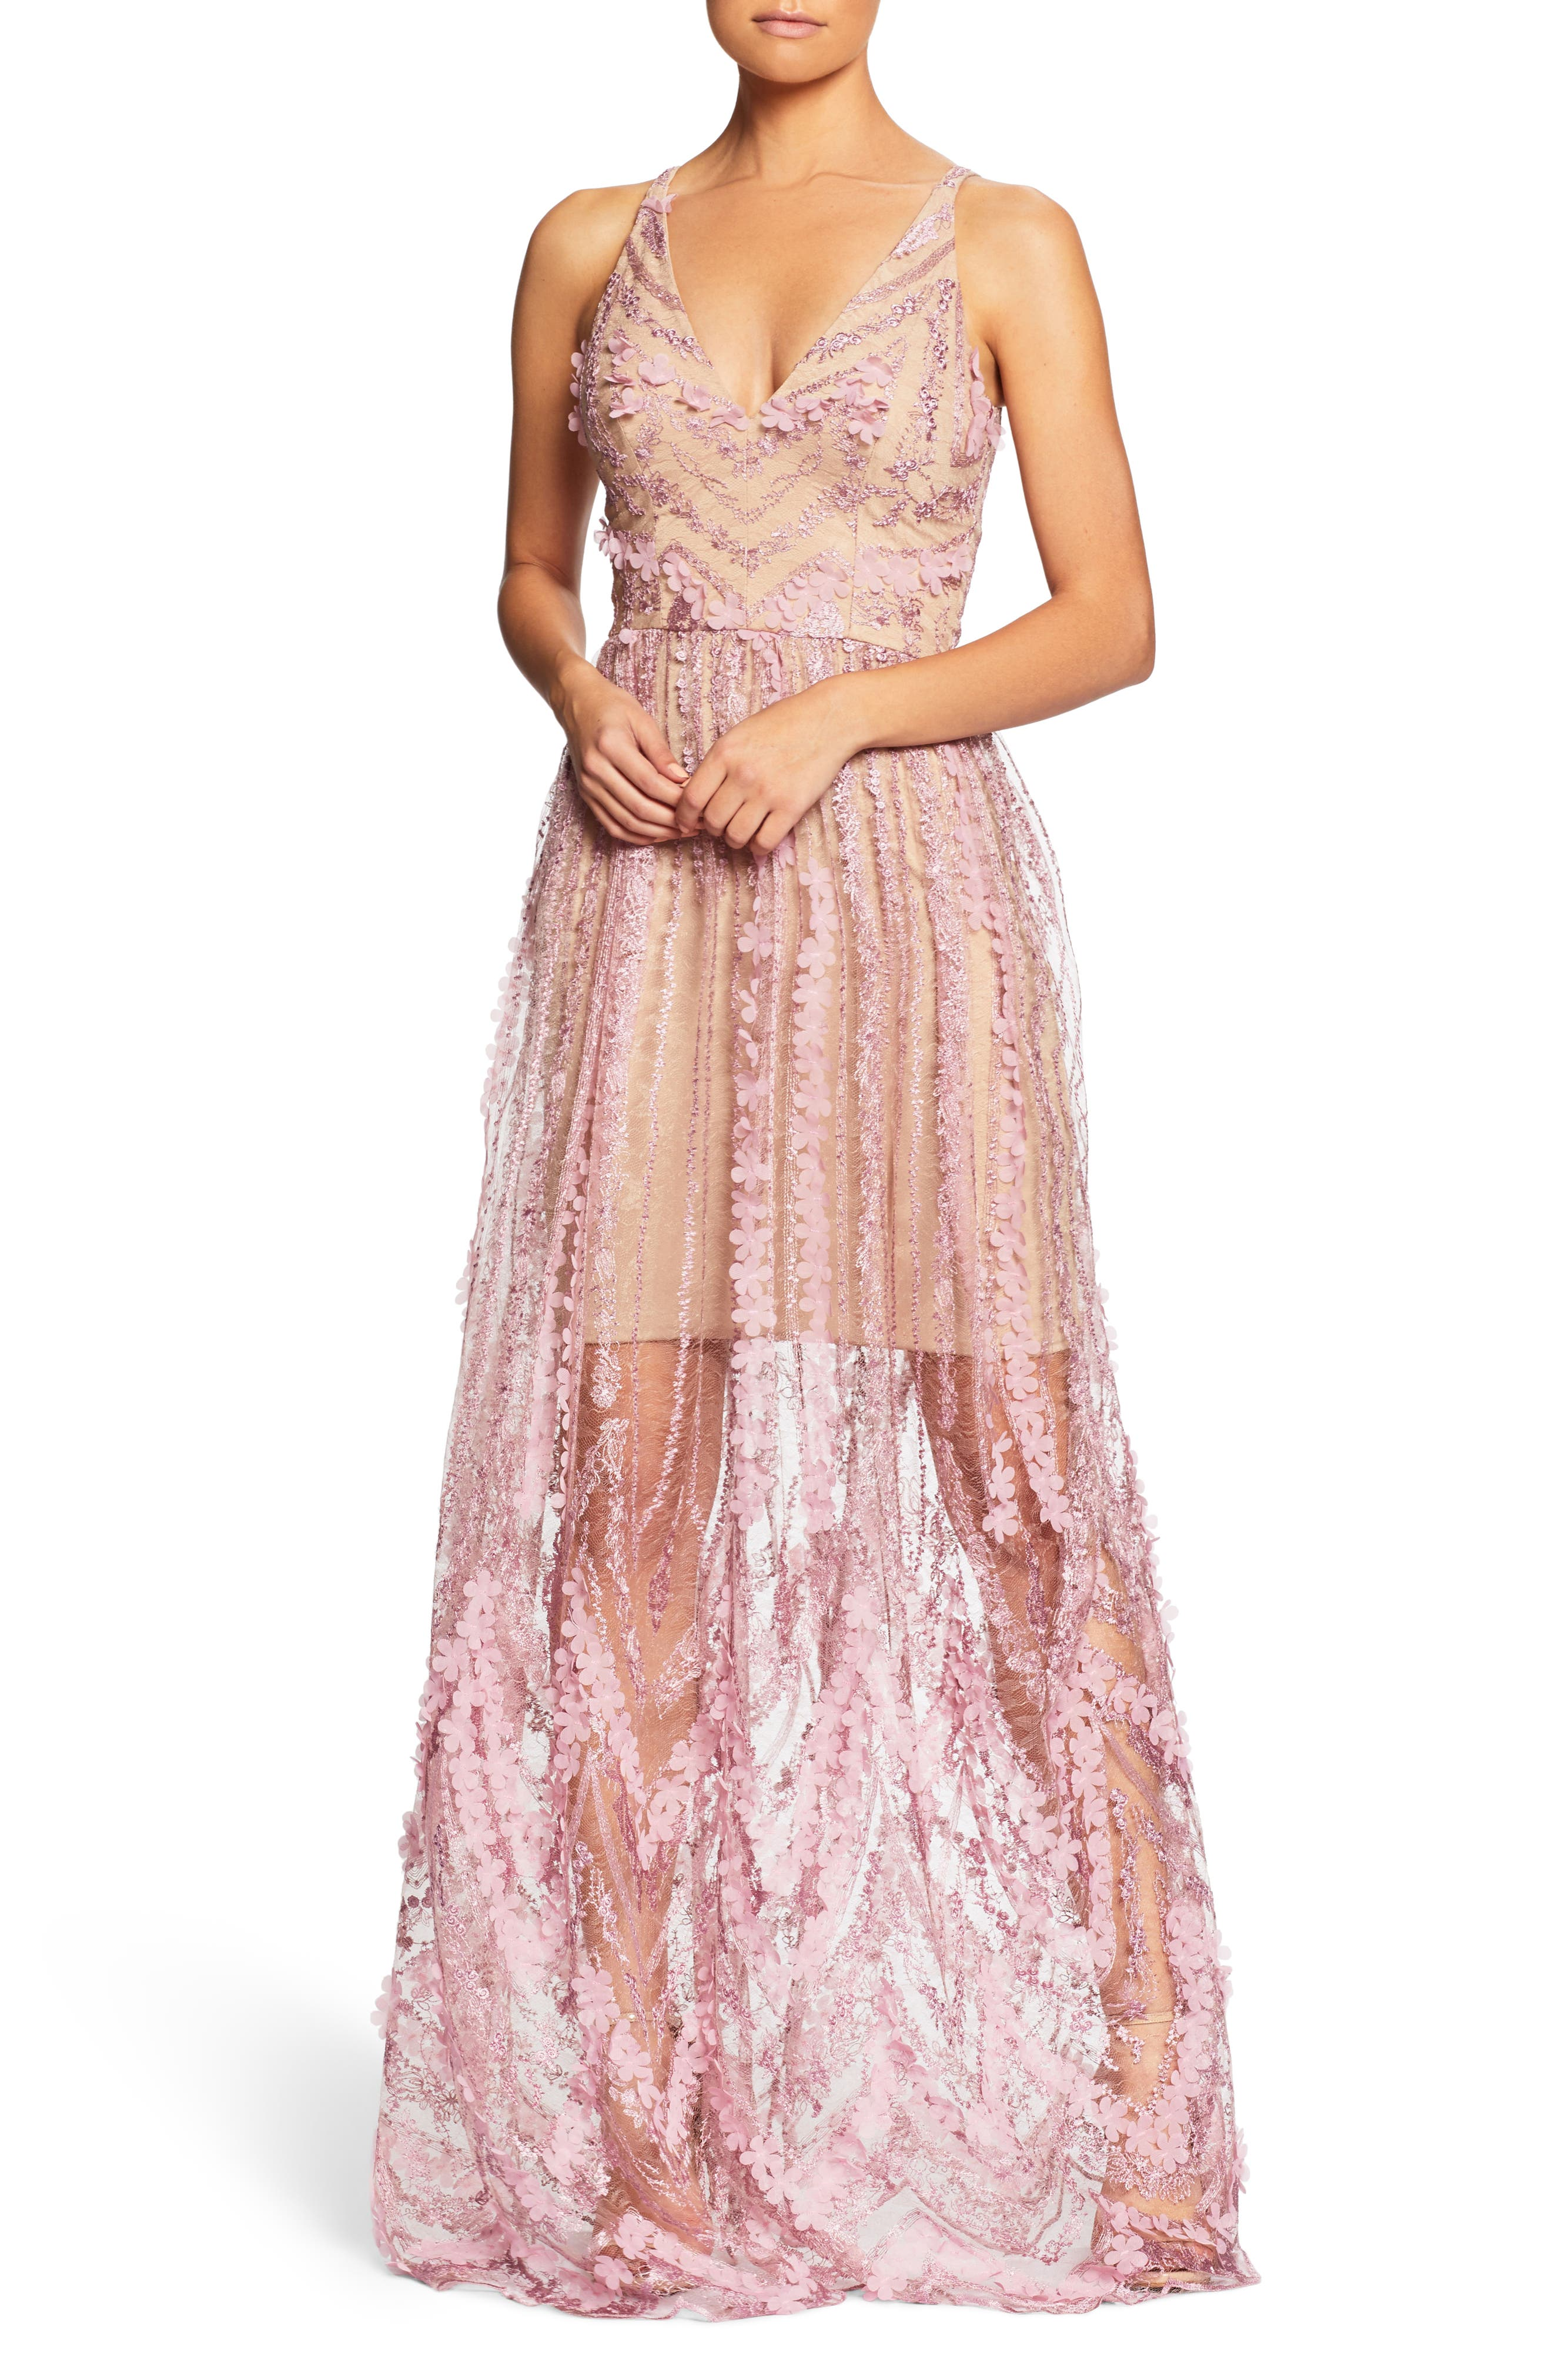 Chelsea Lace A-Line Gown,                             Main thumbnail 1, color,                             Lilac/ Nude